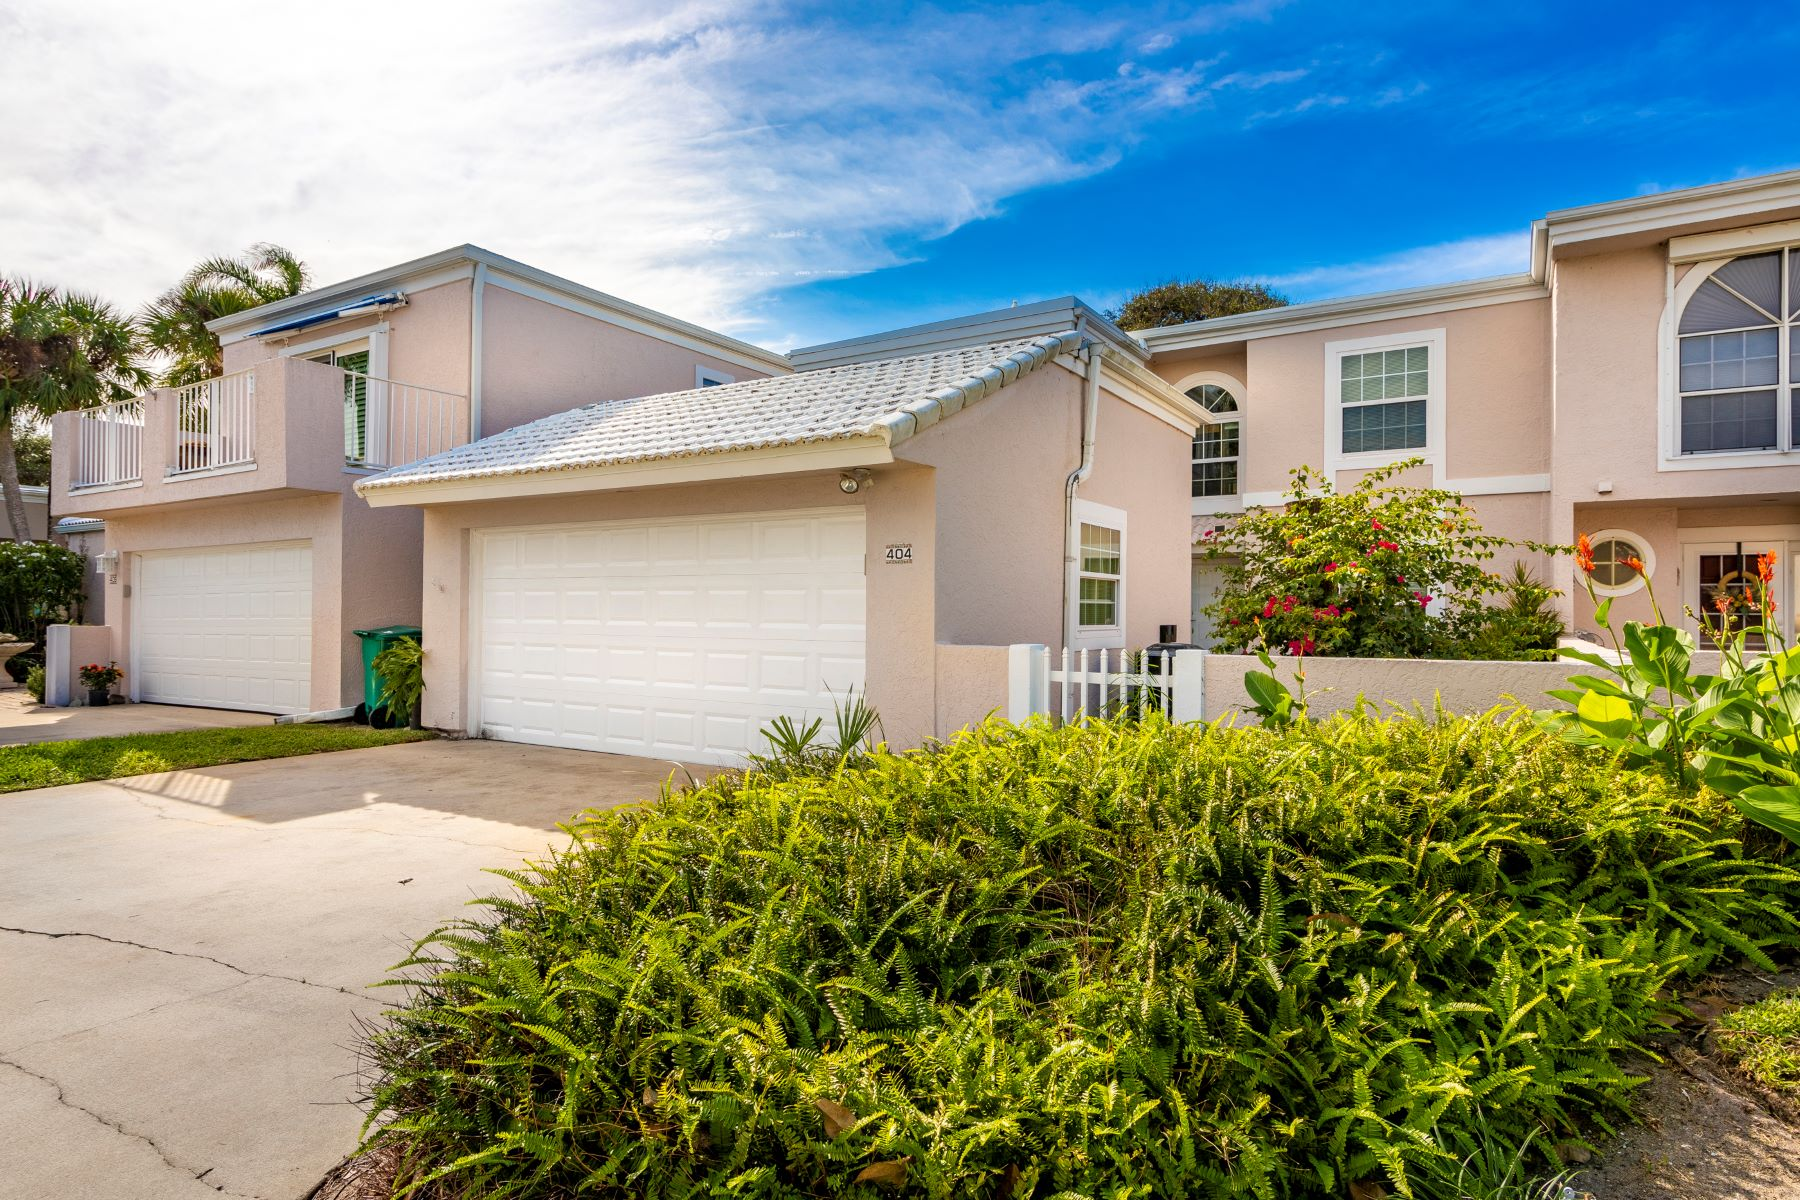 Spacious Town home in Majorca 404 La Costa Street Melbourne Beach, Florida 32951 Estados Unidos